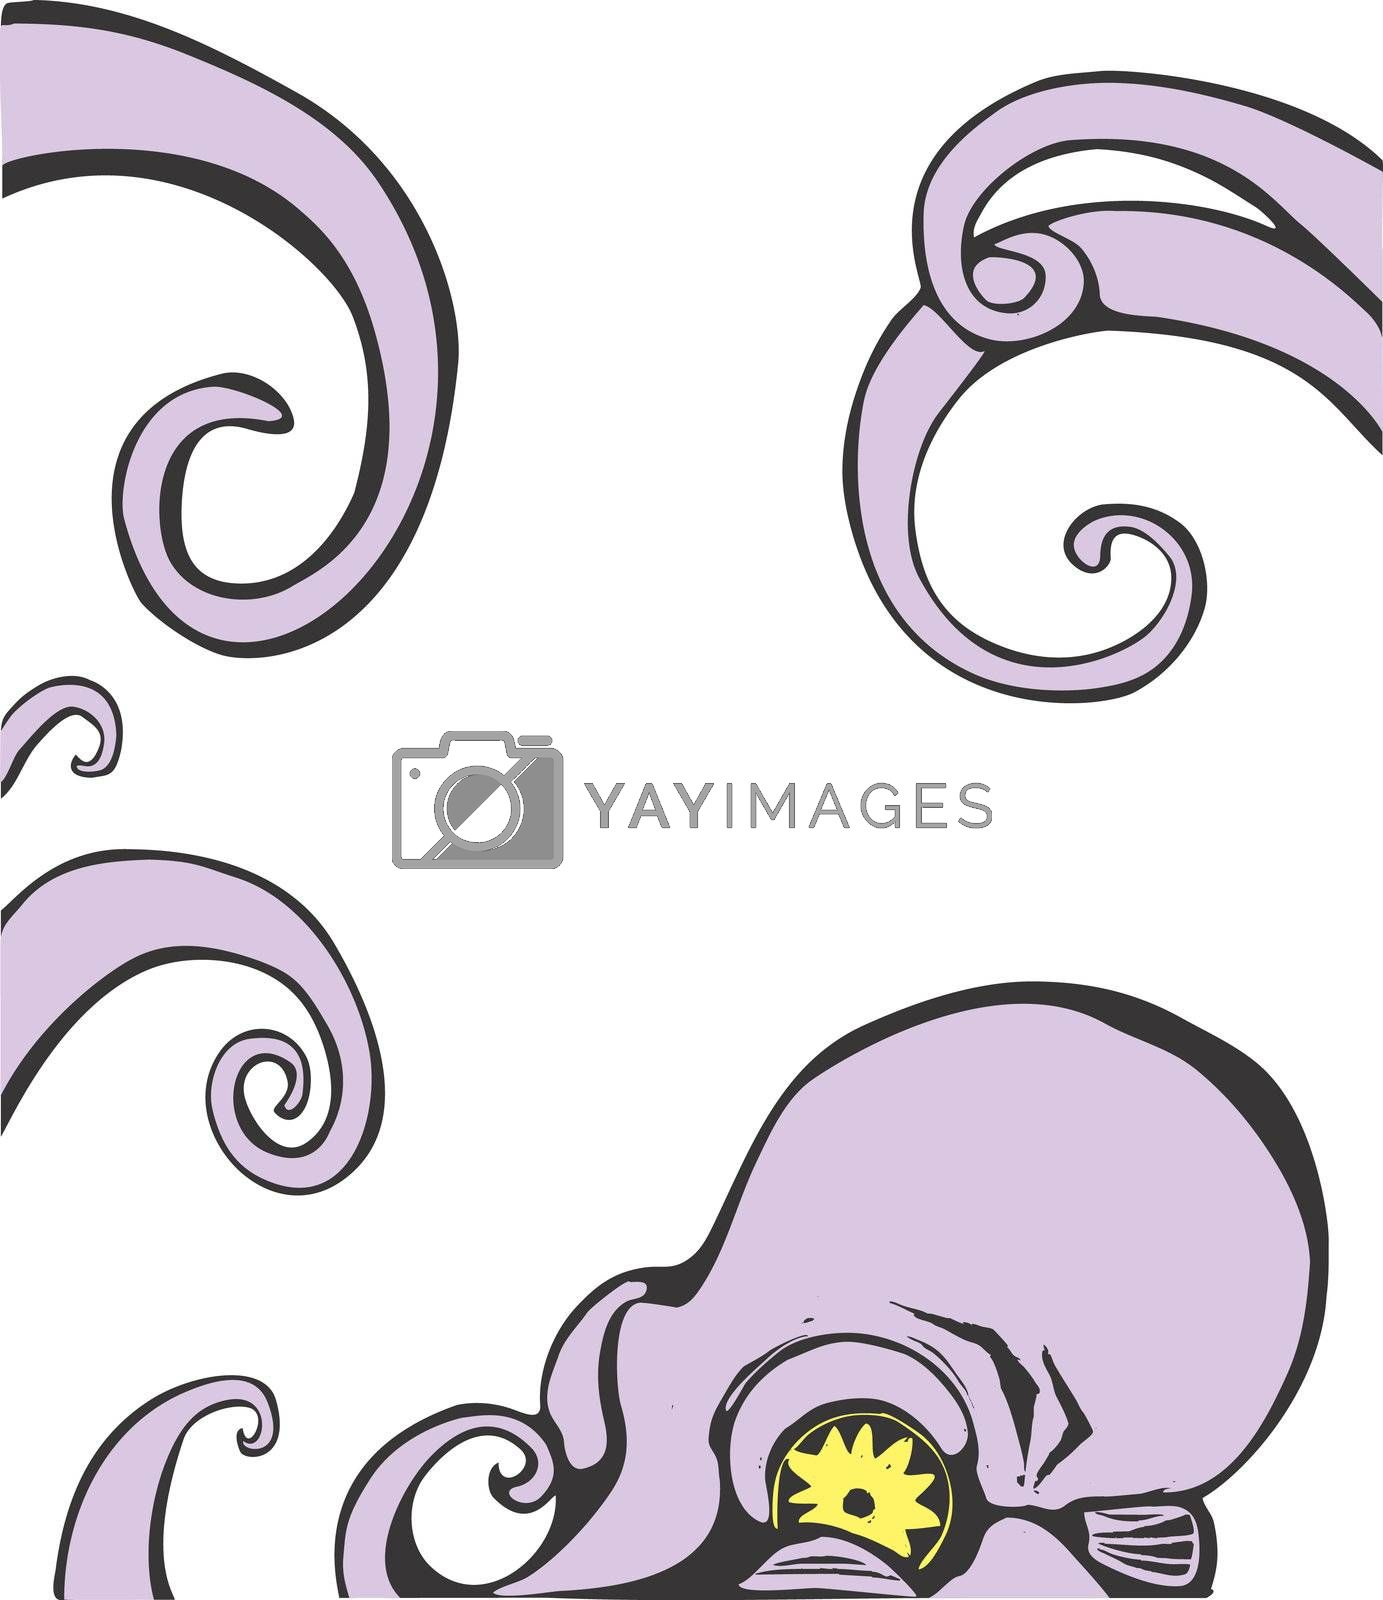 Purple octopus head and arms. Can be moved around to border another image.